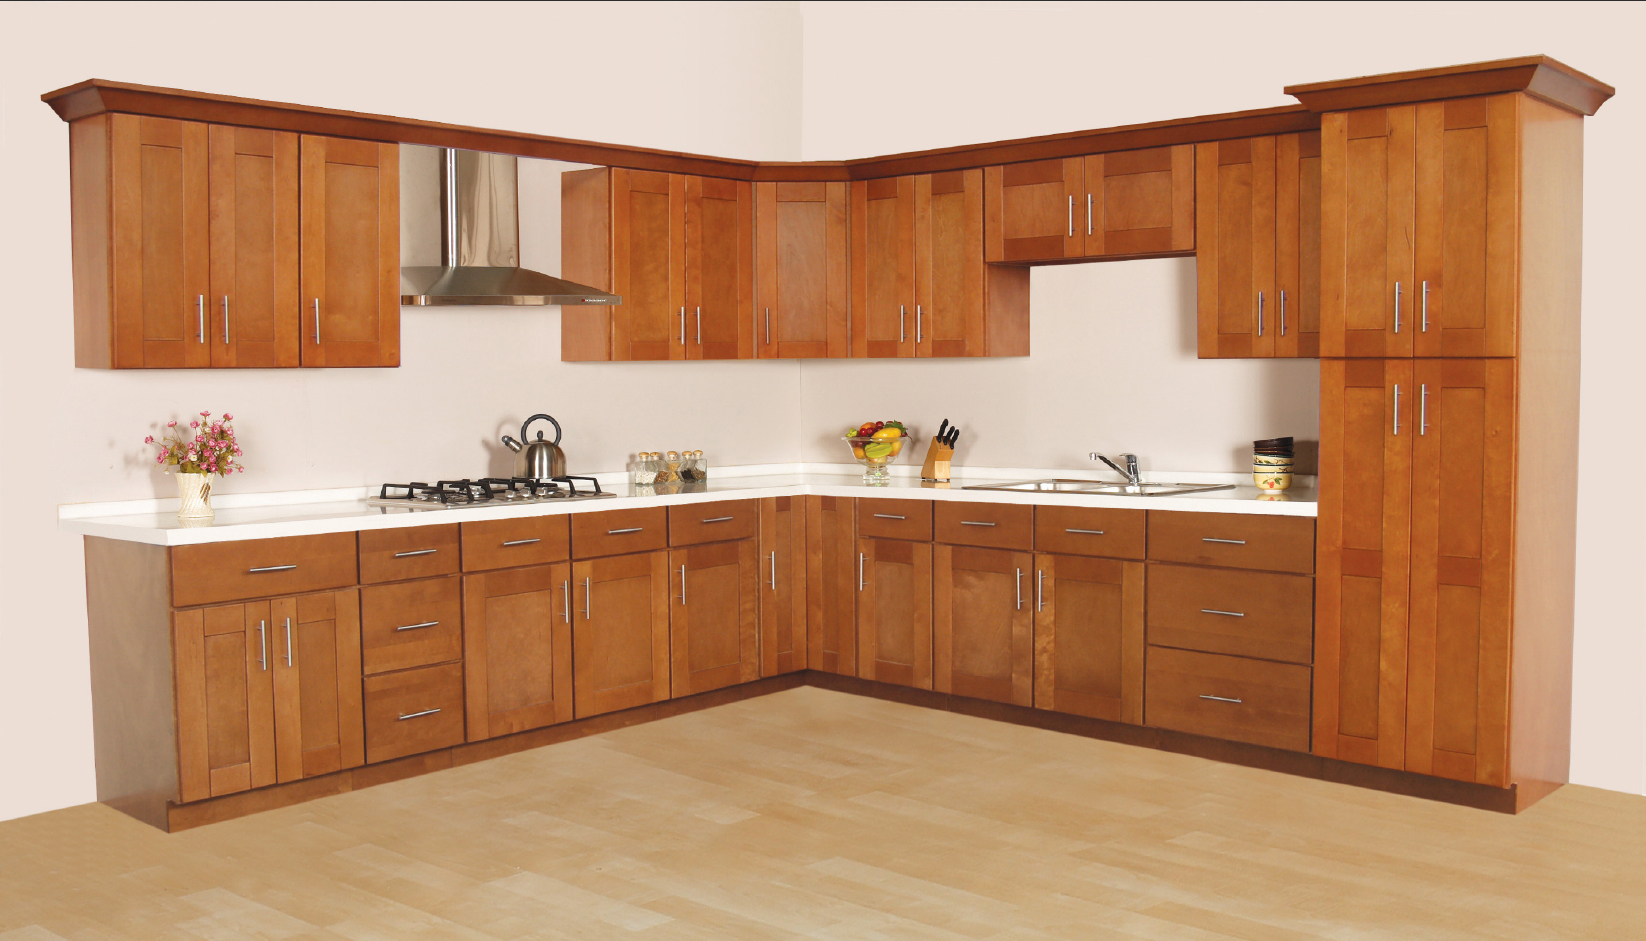 Menards kitchen cabinet price and details home and for Kitchen cabinet shelves